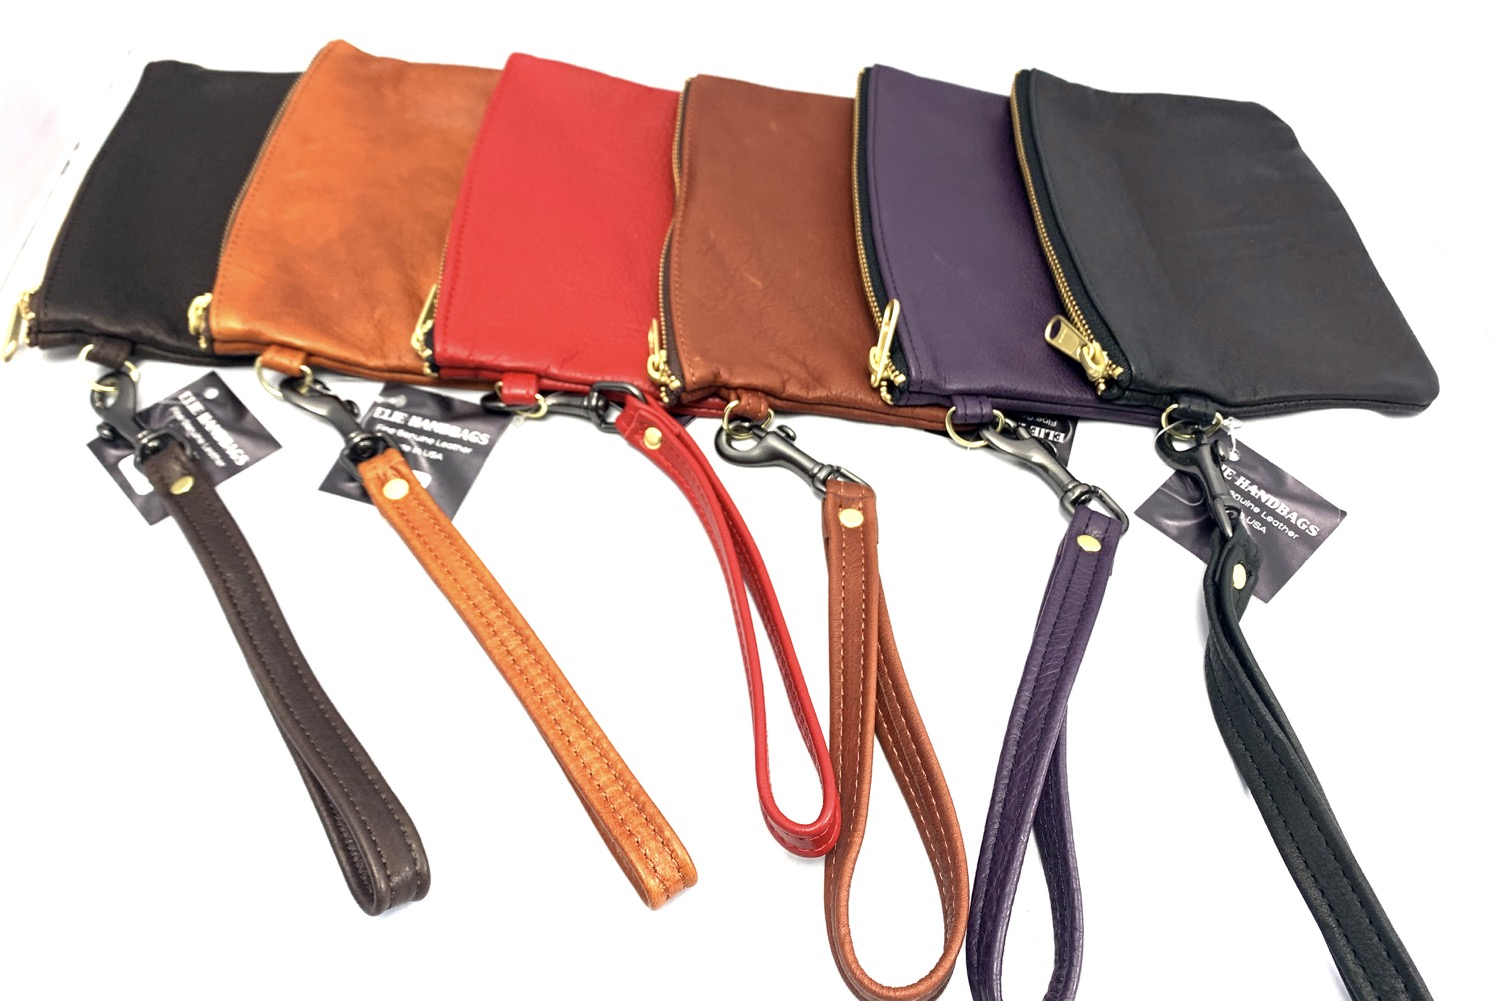 Wristlet Style Leather Pouch